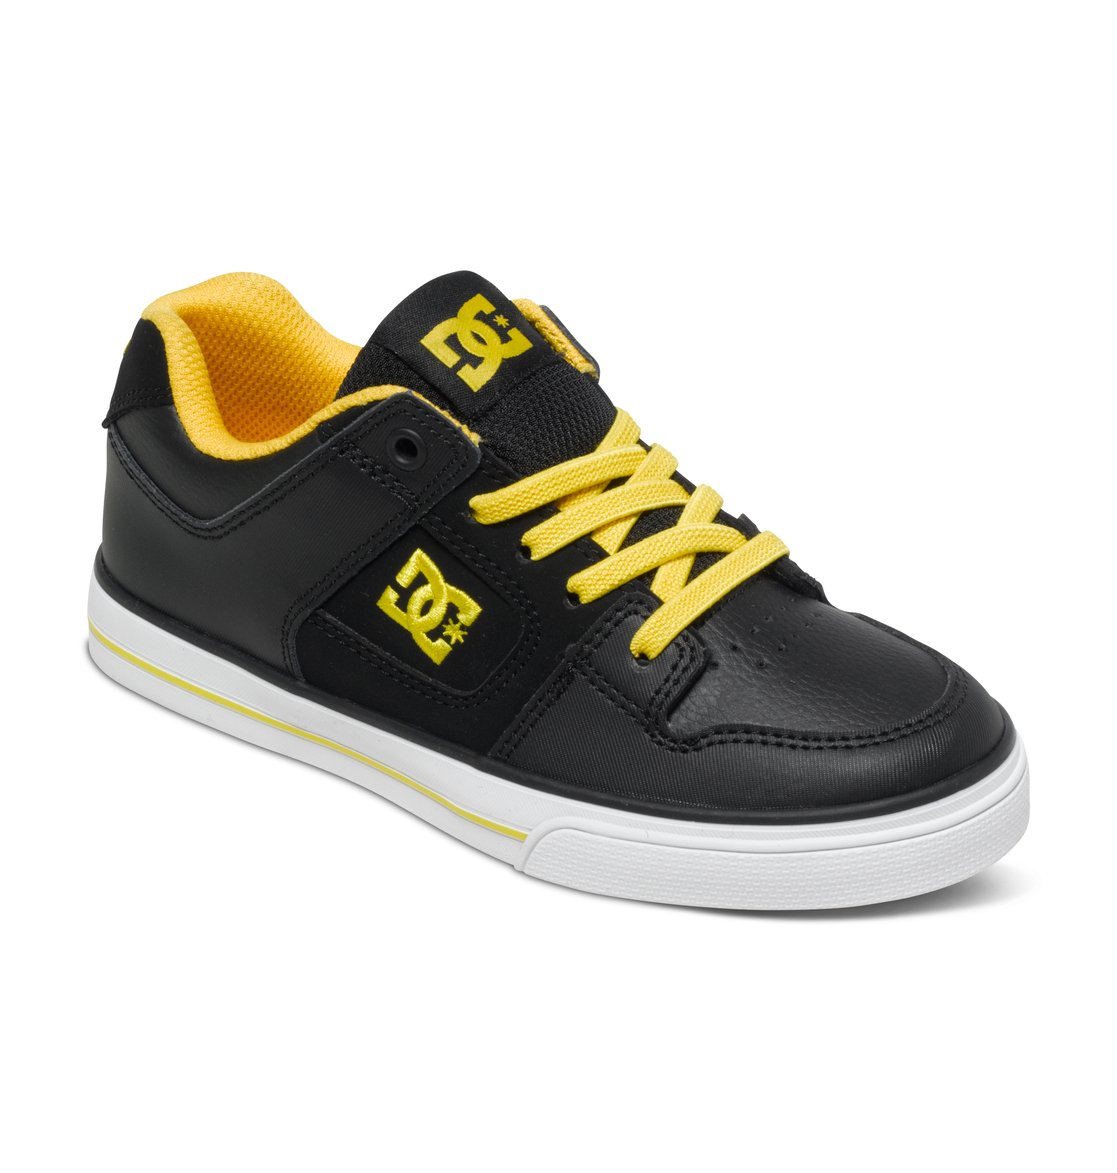 Dc Shoes With Elastic Laces